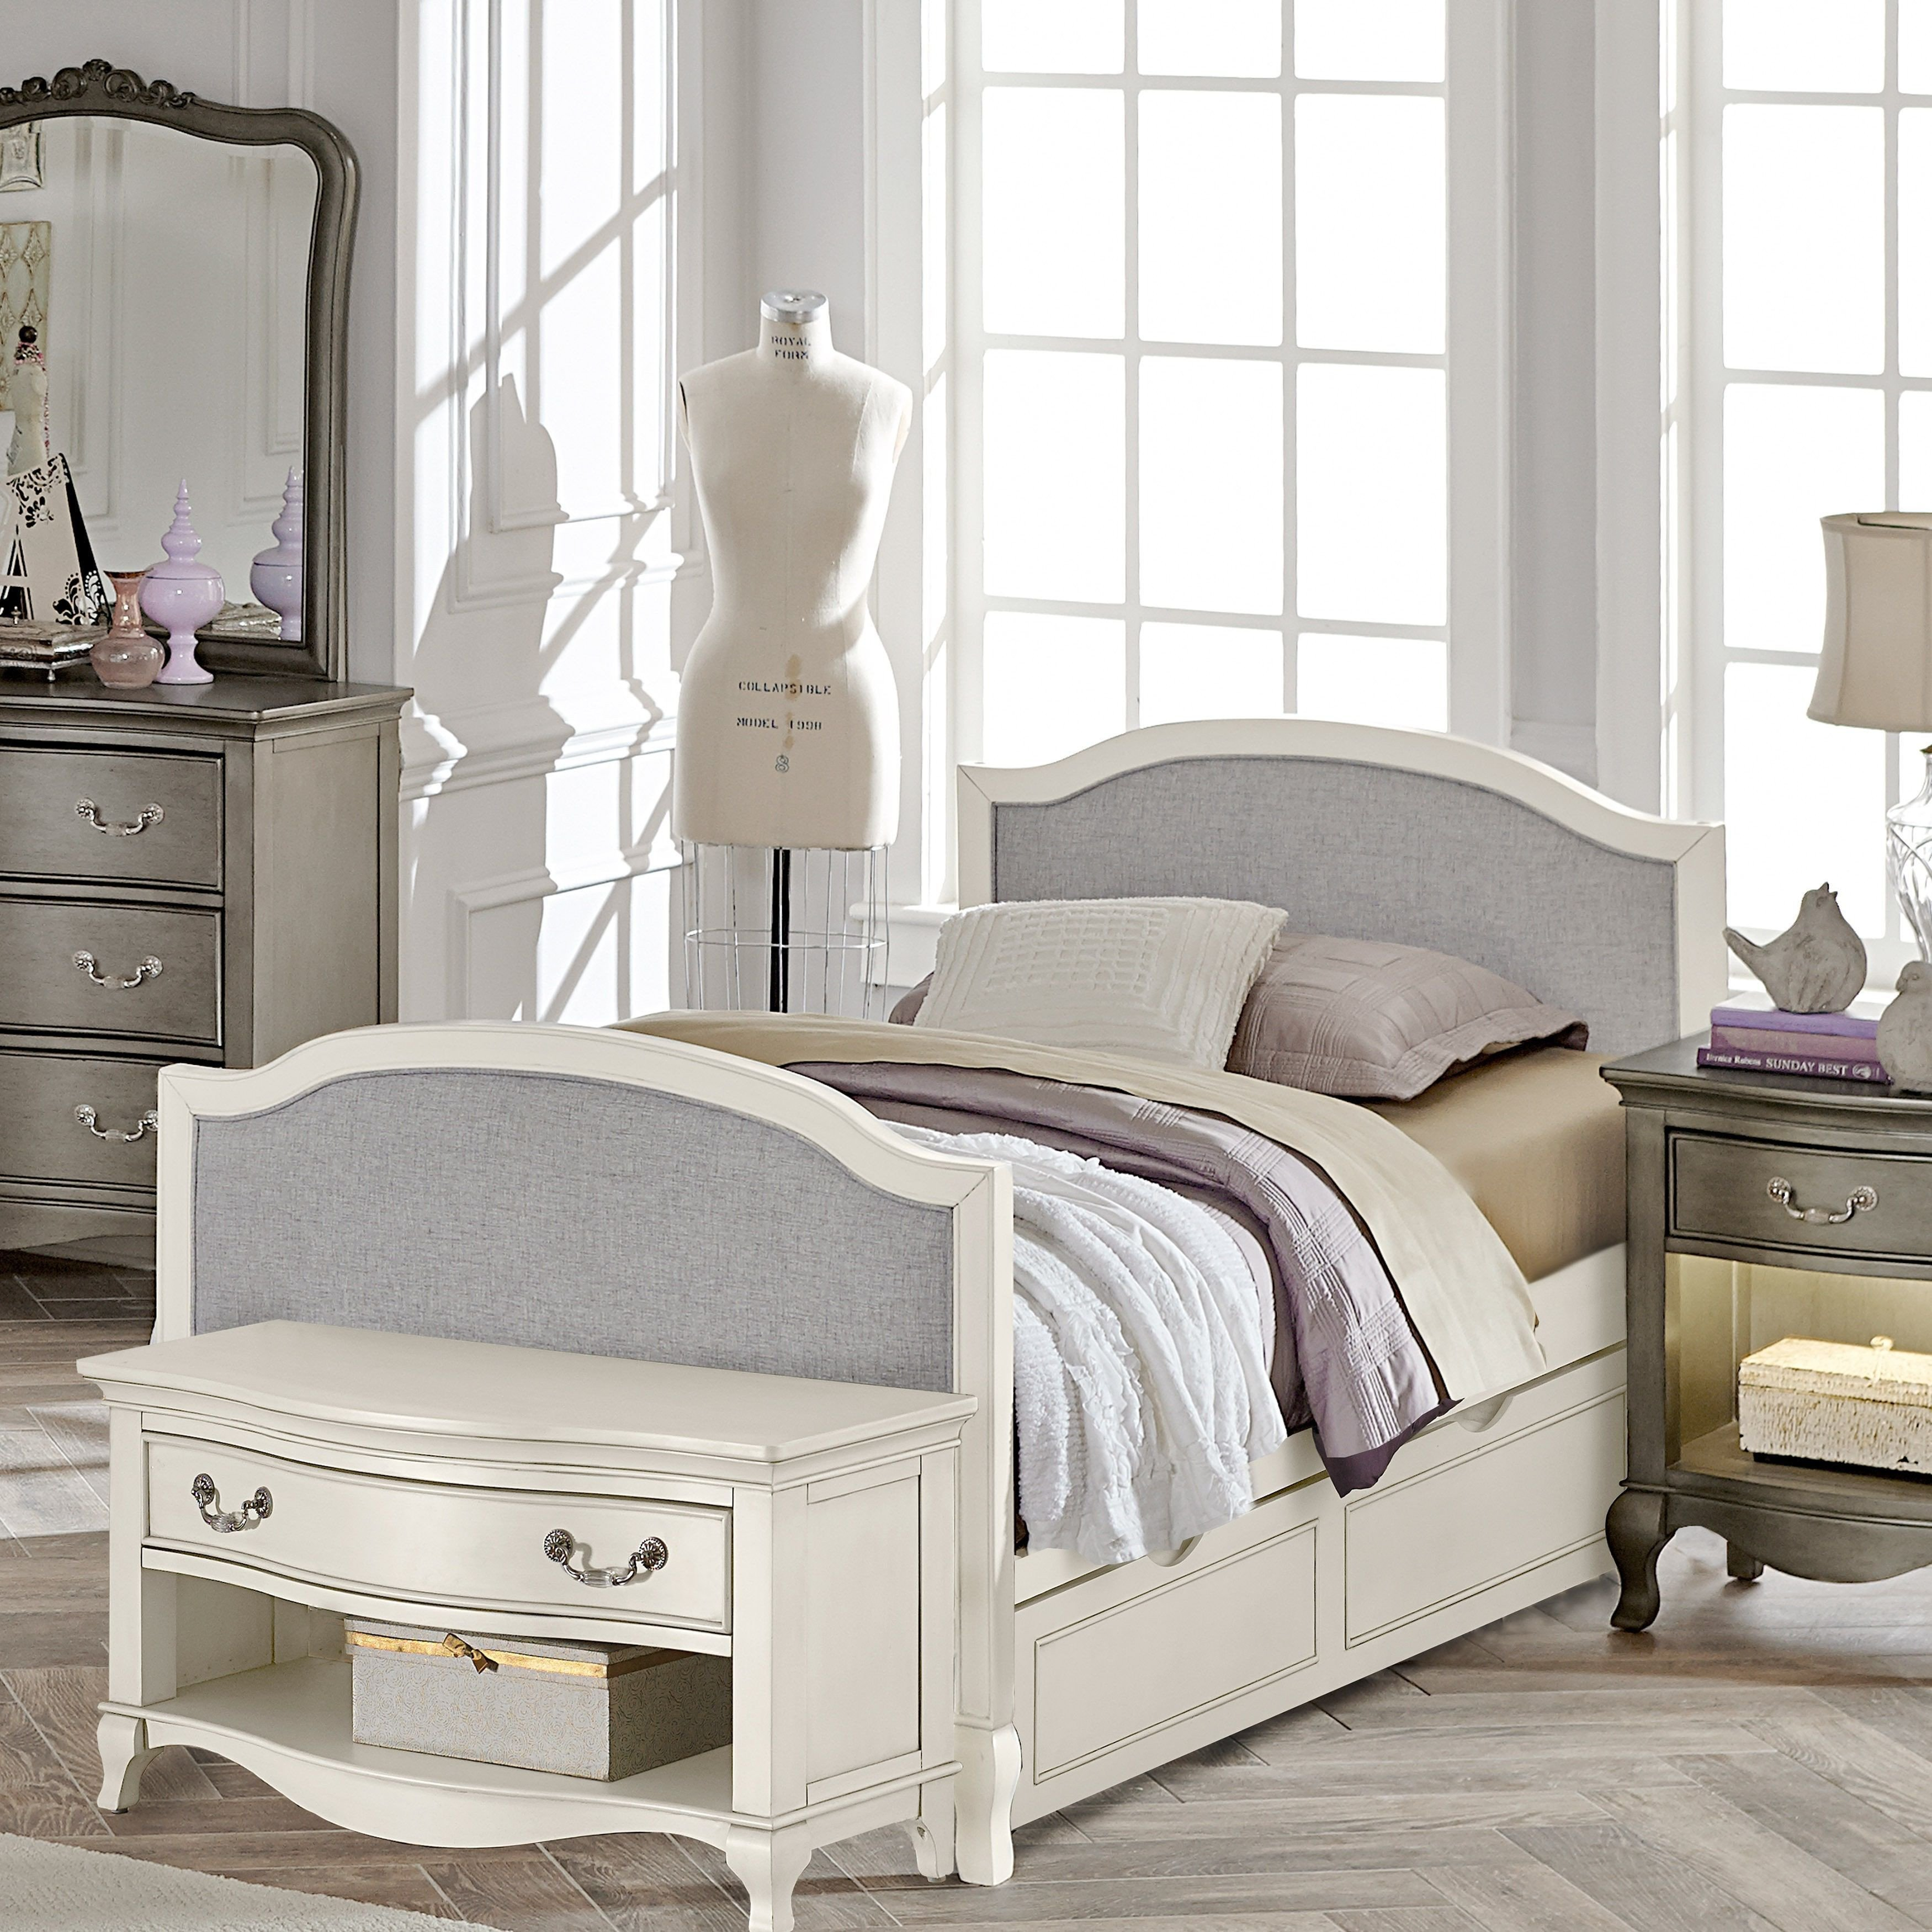 Twin Bed Bedroom Set Awesome Kensington Victoria Antique White Twin Size Upholstered